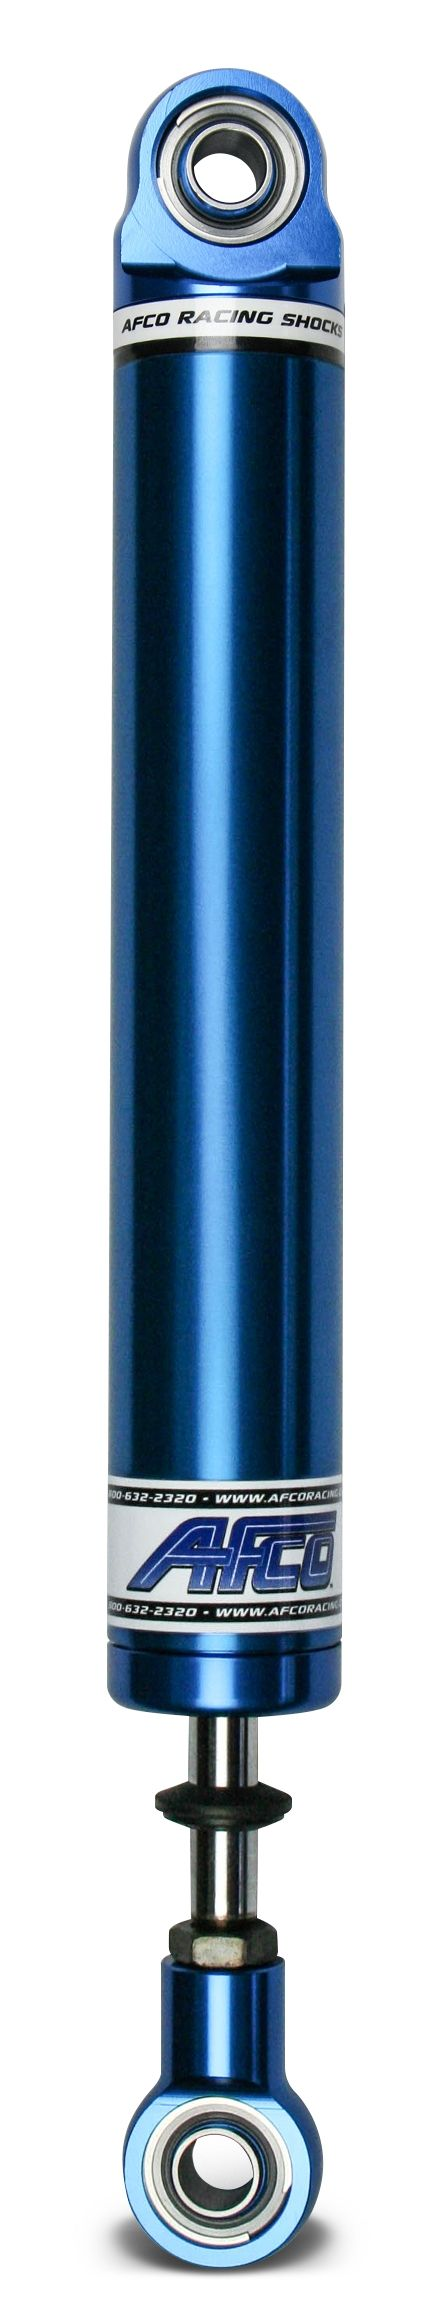 AFCO 1683-6S Aluminum Shock Twin Tube 16 Series 8